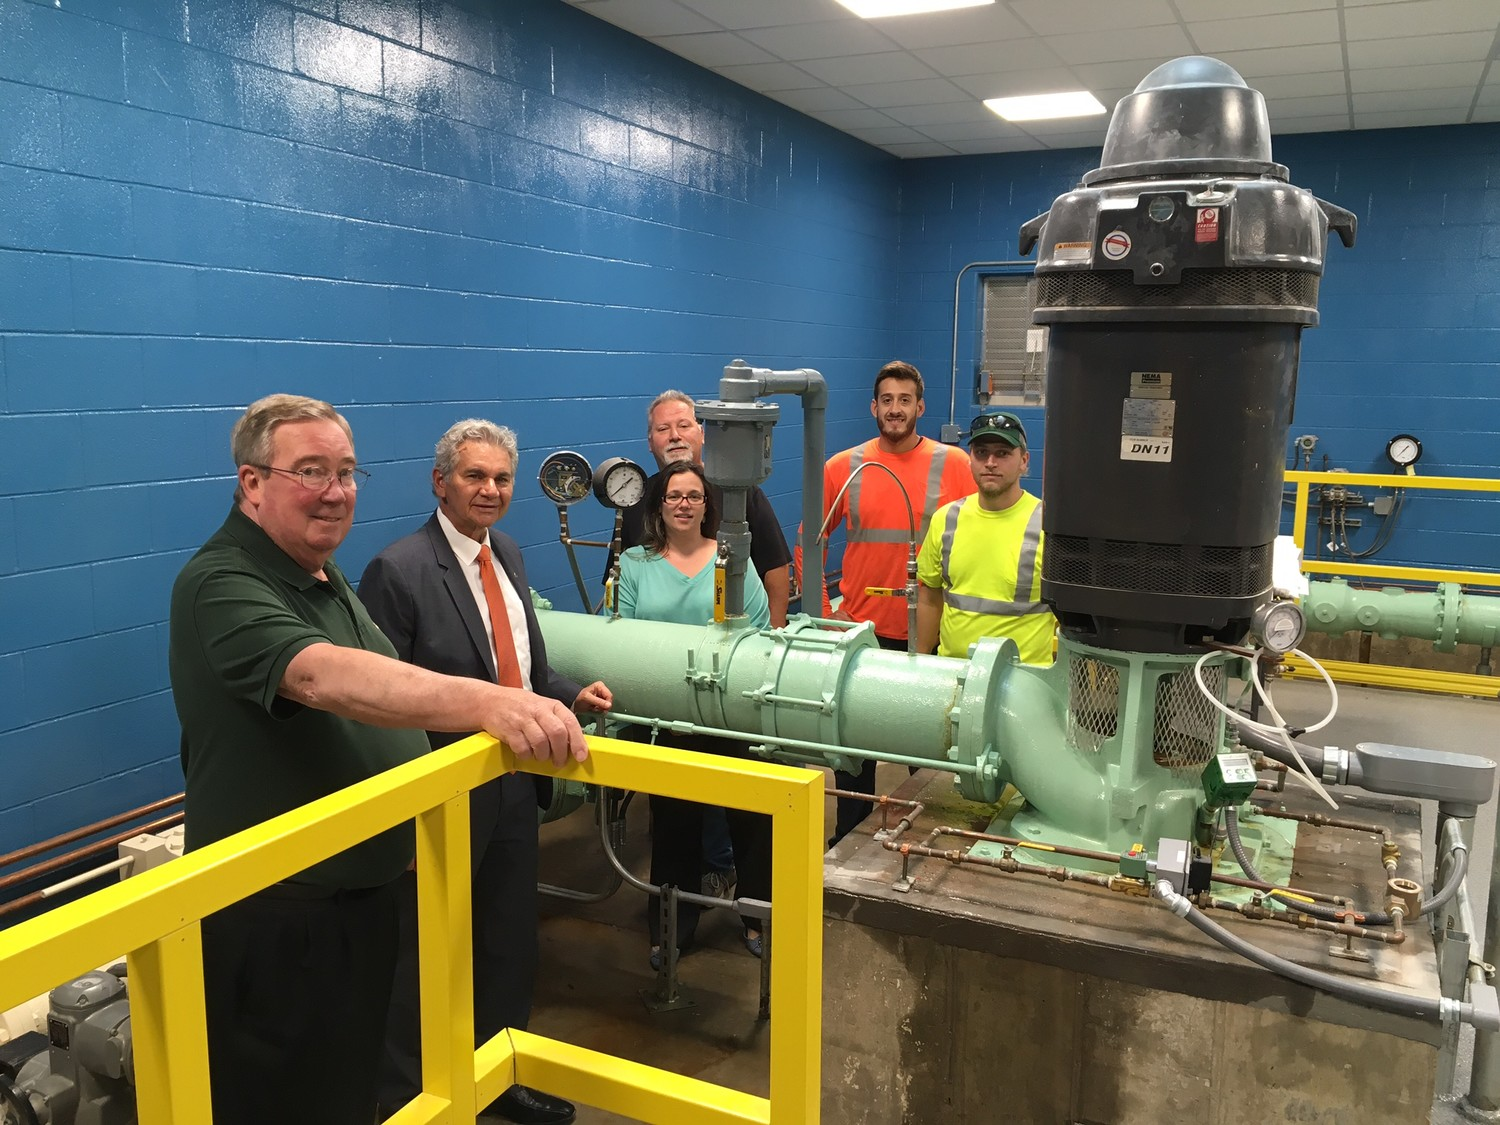 Mayor Reggie Spinello, second from left, received a tour of the new Duck Pond Road well's filtration system from Glen Cove DPW Director James Byrne, left, Denise O'Connor, Water Service Foreman Michael Colangelo, Daniel Ermmarino and Kevin Basile.